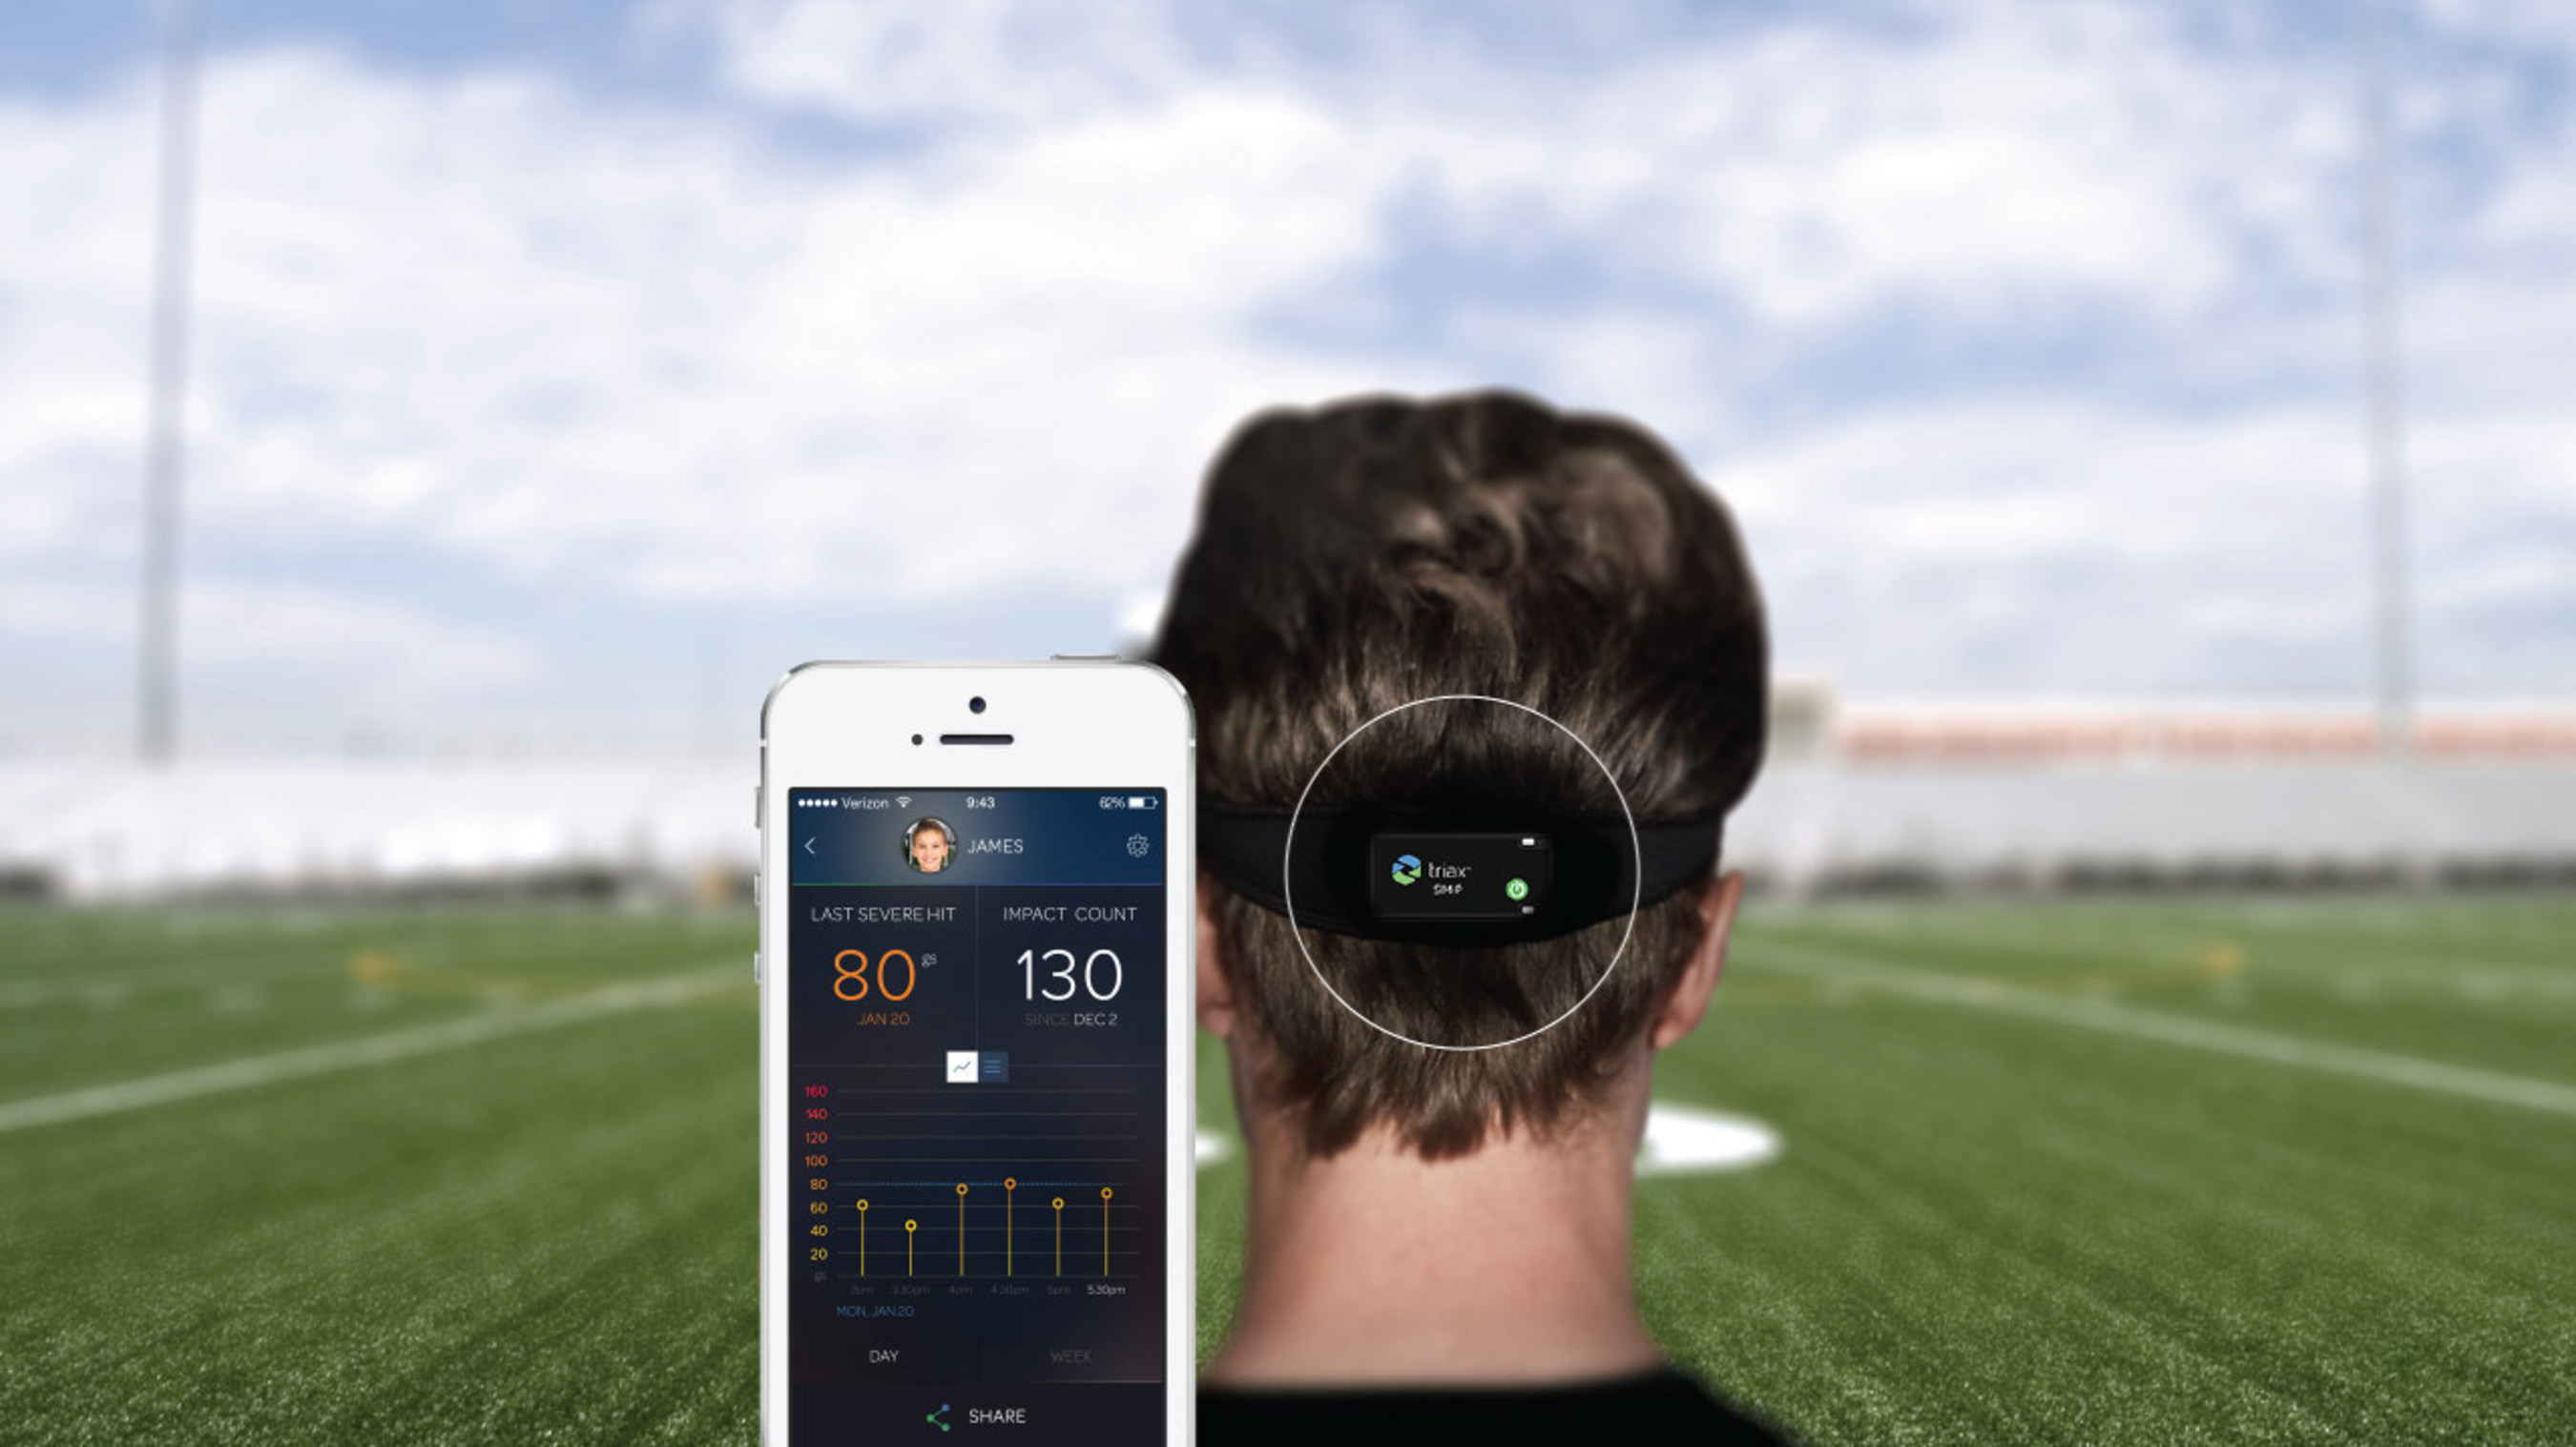 Abby Wambach joins Triax(TM) team to encourage head impact monitoring for better safety and improved training technique among athletes. Abby will be wearing the new SIM-P(TM) monitor in her headband during trainings leading into the 2015 World Cup. More information at www.TriaxTec.com.